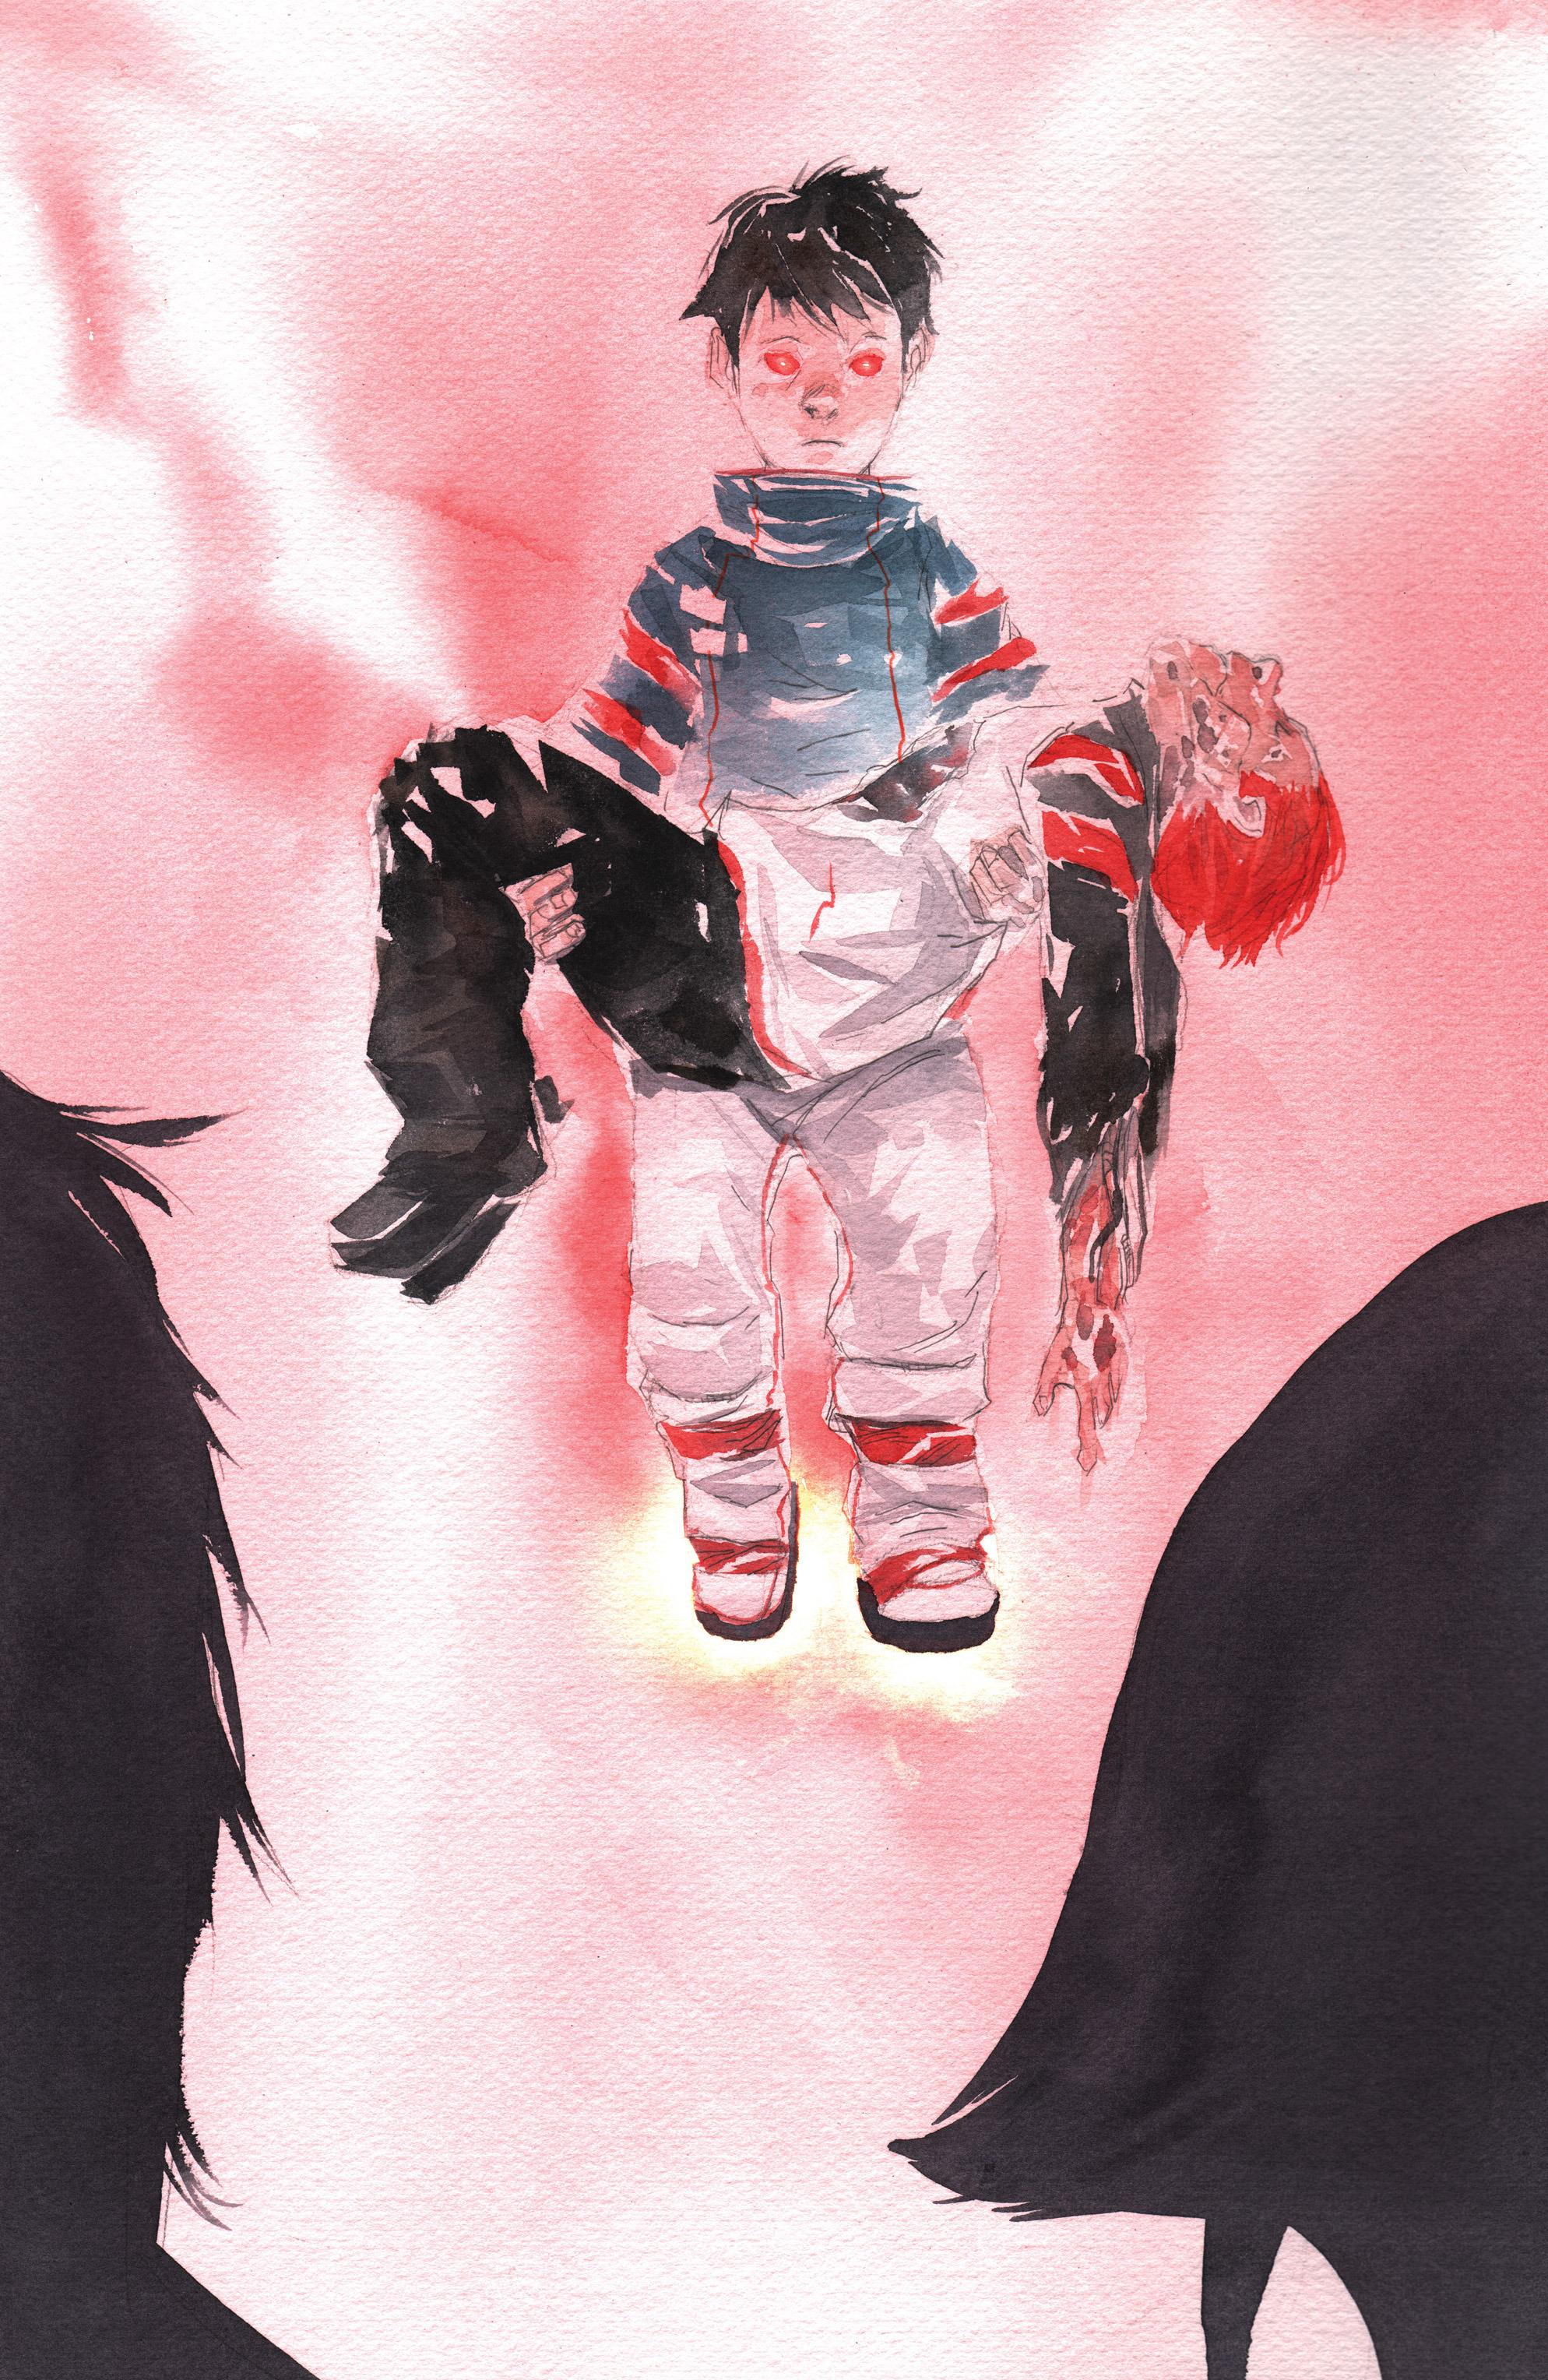 Descender Vol 4 Orbital Mechanics Review